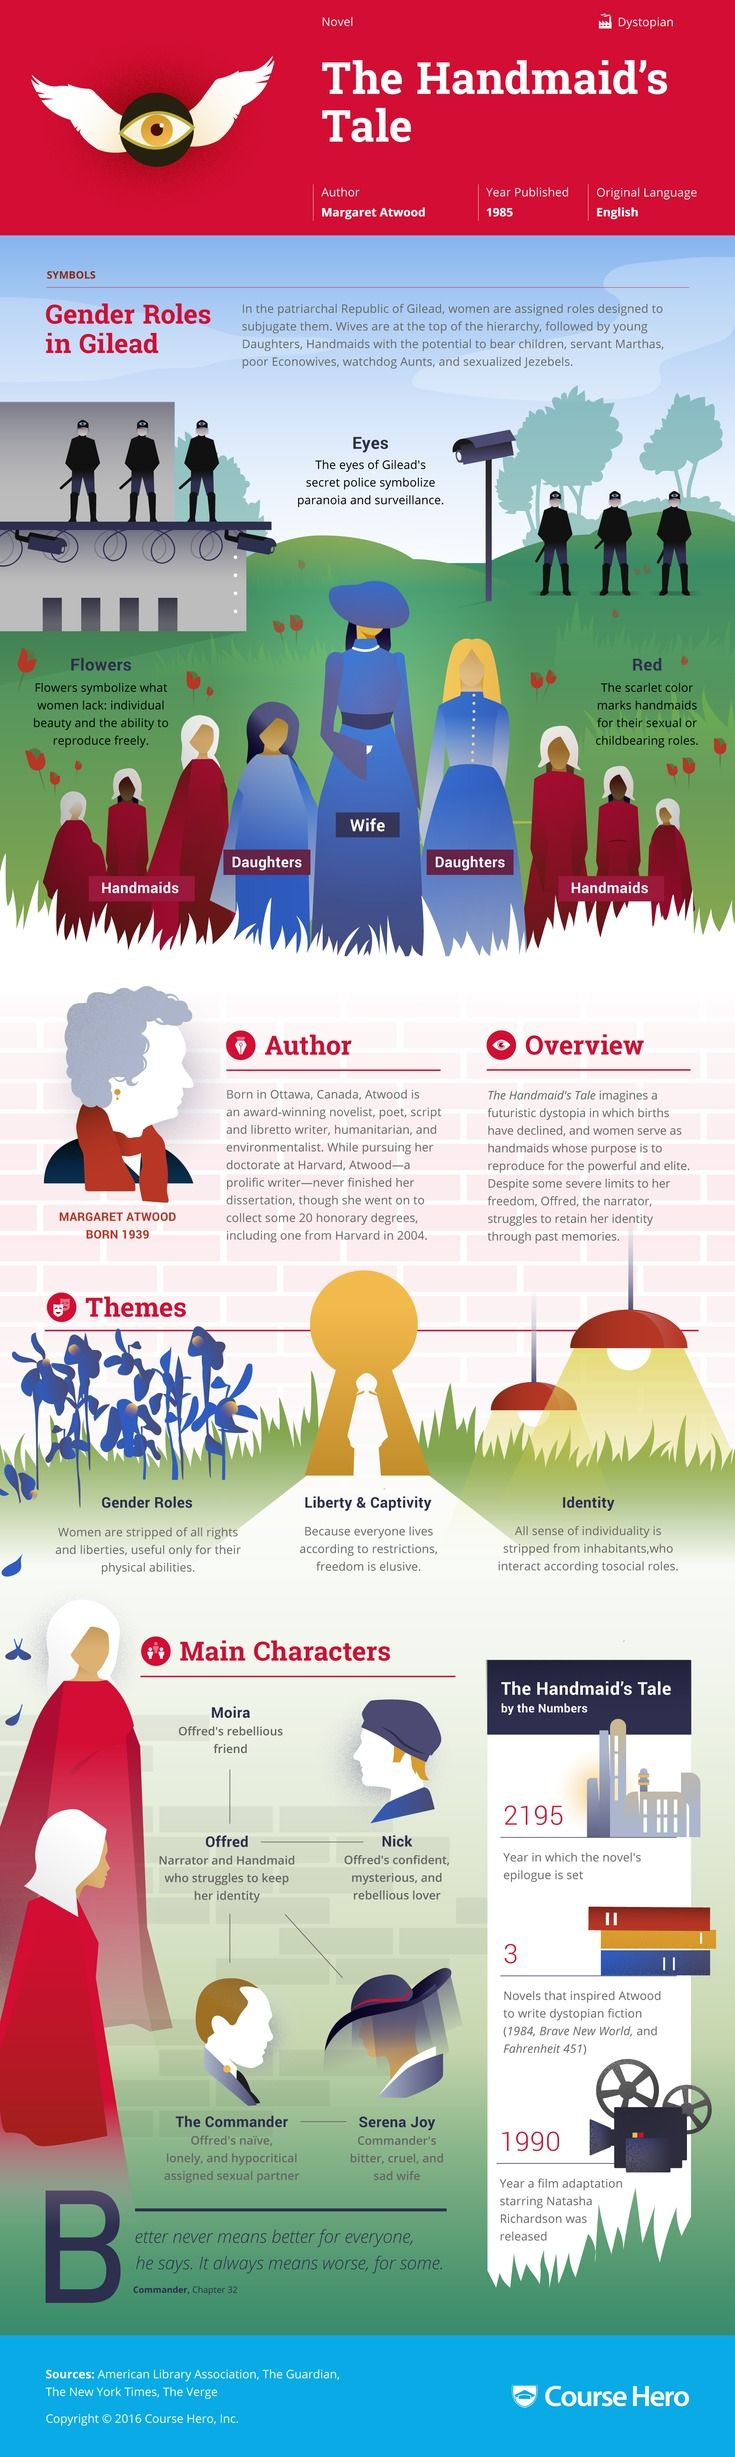 the depiction of societys roles in margaret atwoods novel the handmaids tale Linguistic approach of margaret atwoods handmaids tale english literature essay print reference this apa all handmaids, whose role is to bear children for the childless but we have to take into account the levels of accurancy whereupon margaret atwood cannot be identified.